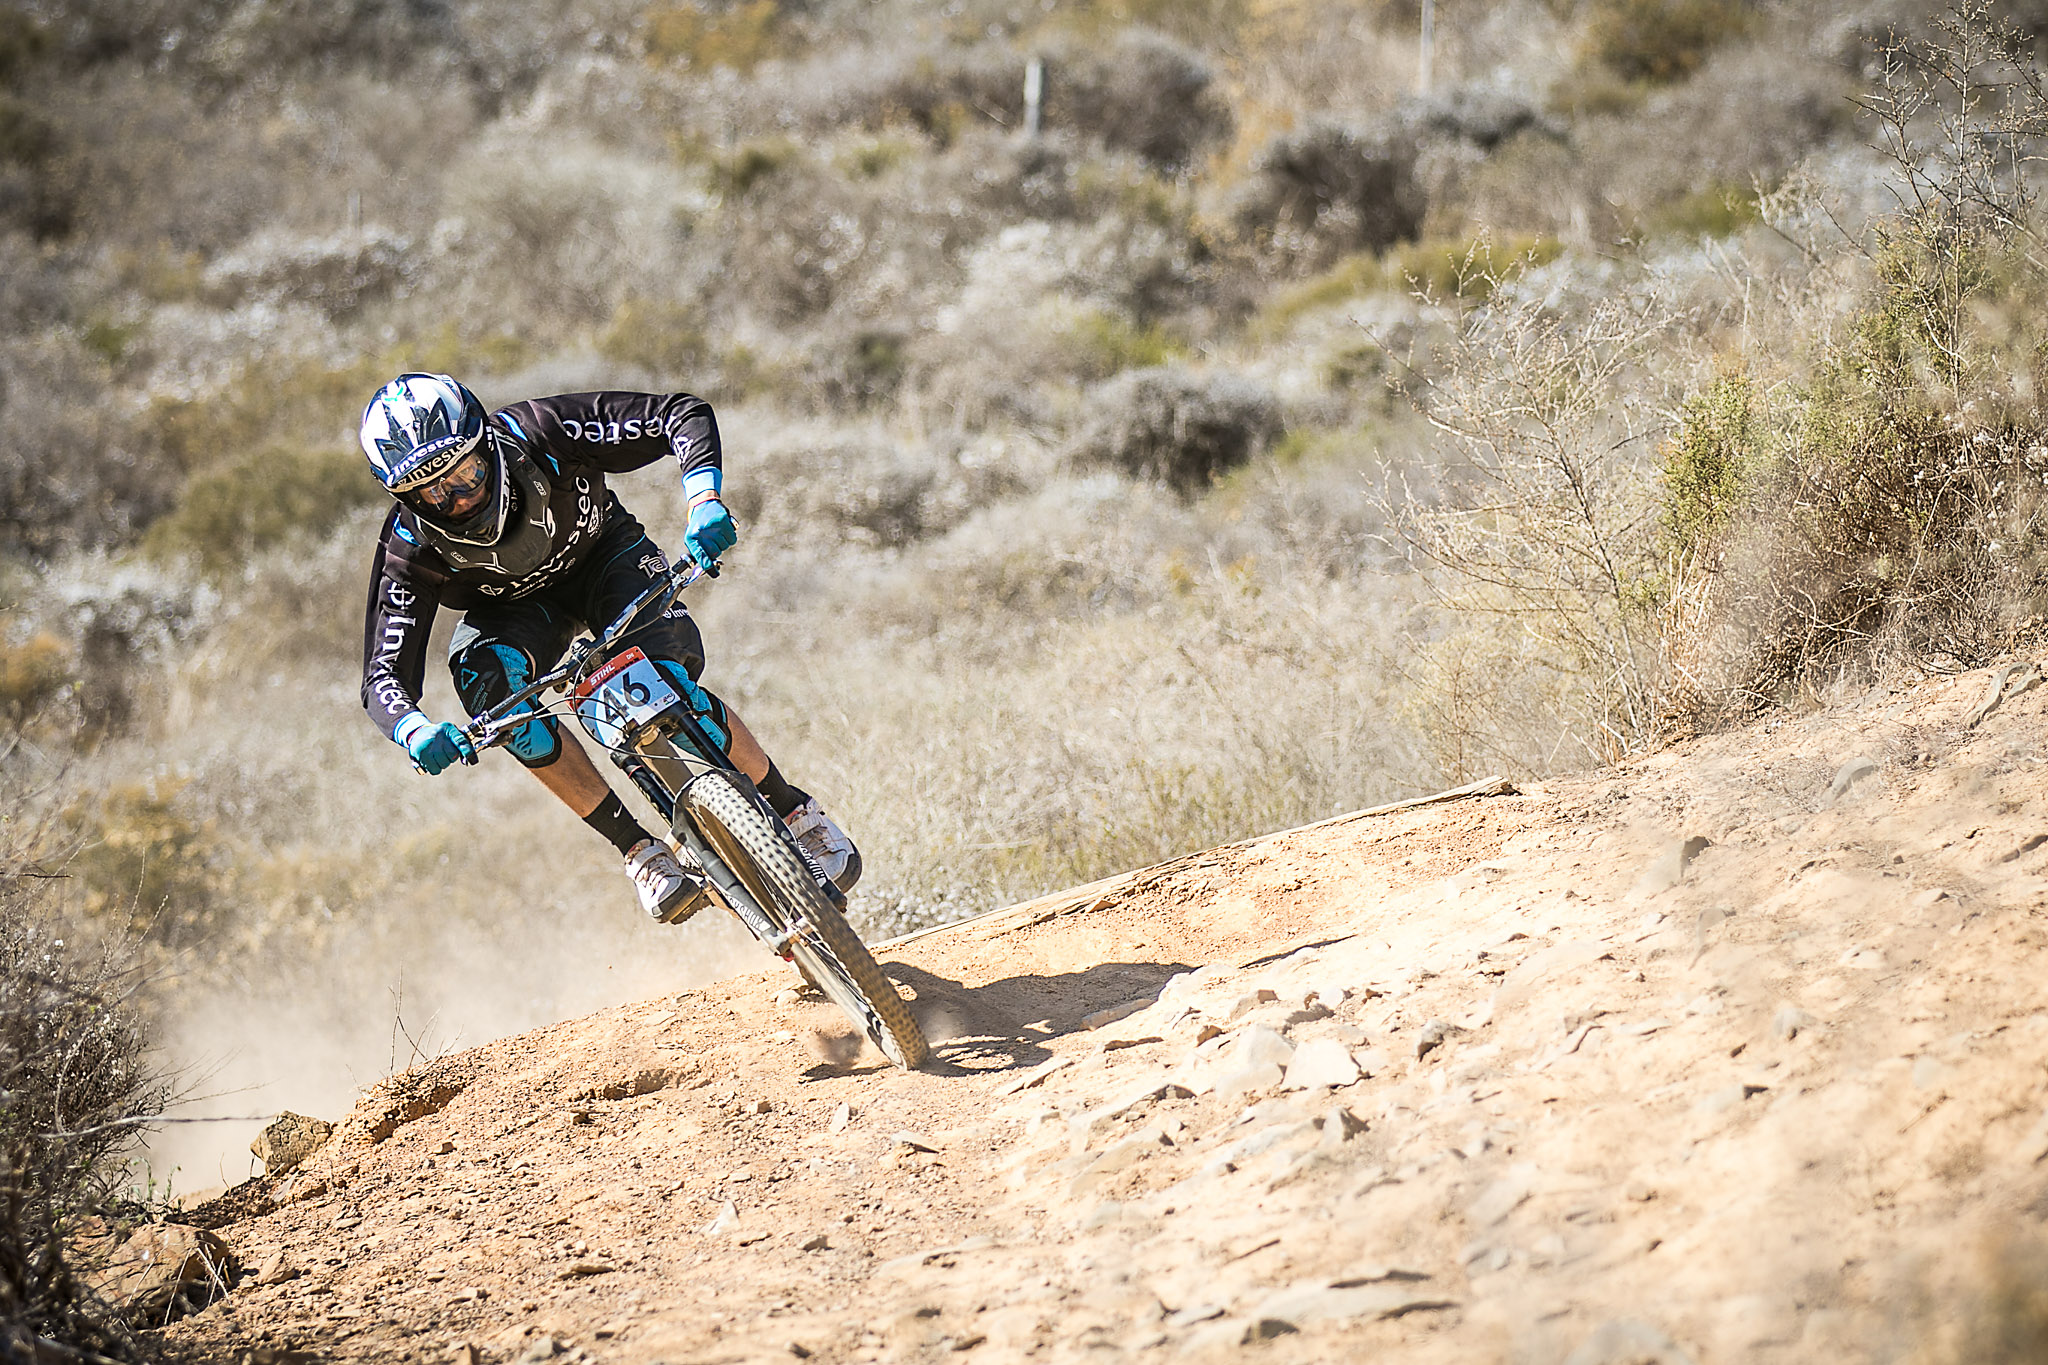 Elite Men's winner Stefan Garlicki at theStihl 2015 SA MTB Cup Series #1 which took place in Contermanskloof in the Western Cape on Sunday 22 February 2015. Chris Hitchcock | PhotoSport